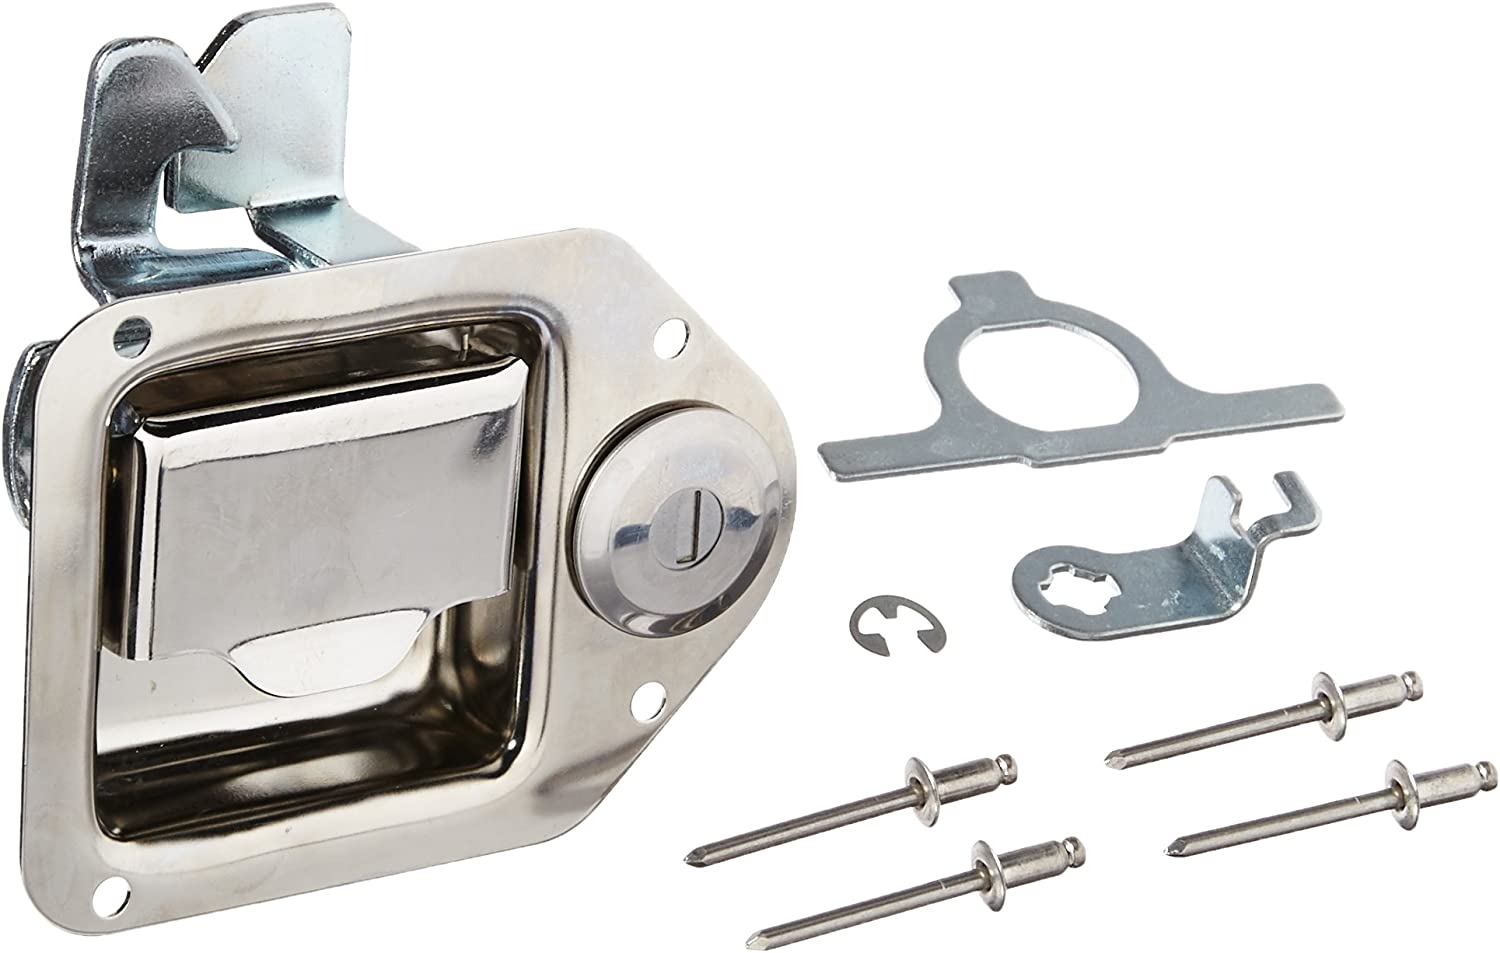 Bolt 7022697 Toolbox Latch Retrofit Kit for Late Model Chevrolet and GMC Keys